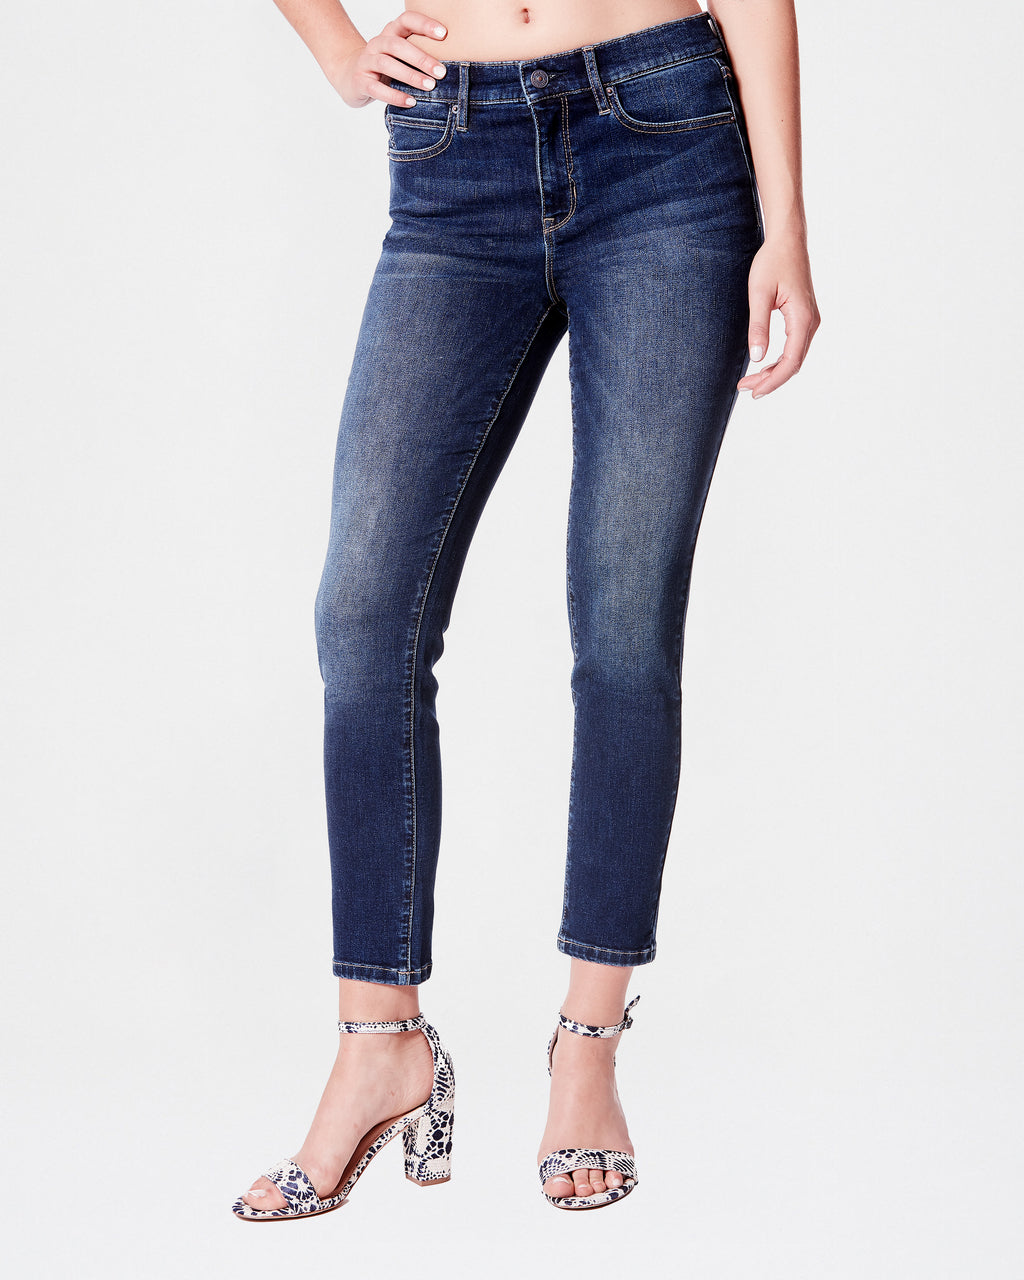 NJ04501 - High Rise Ankle Skinny Eco Jean - bottoms - denim - Our classic high rise skinny denim is now available in our eco-friendly fabric, t-400 which is partially made of recycled plastic and plant based materials. Still the same fit form-flattering fit.